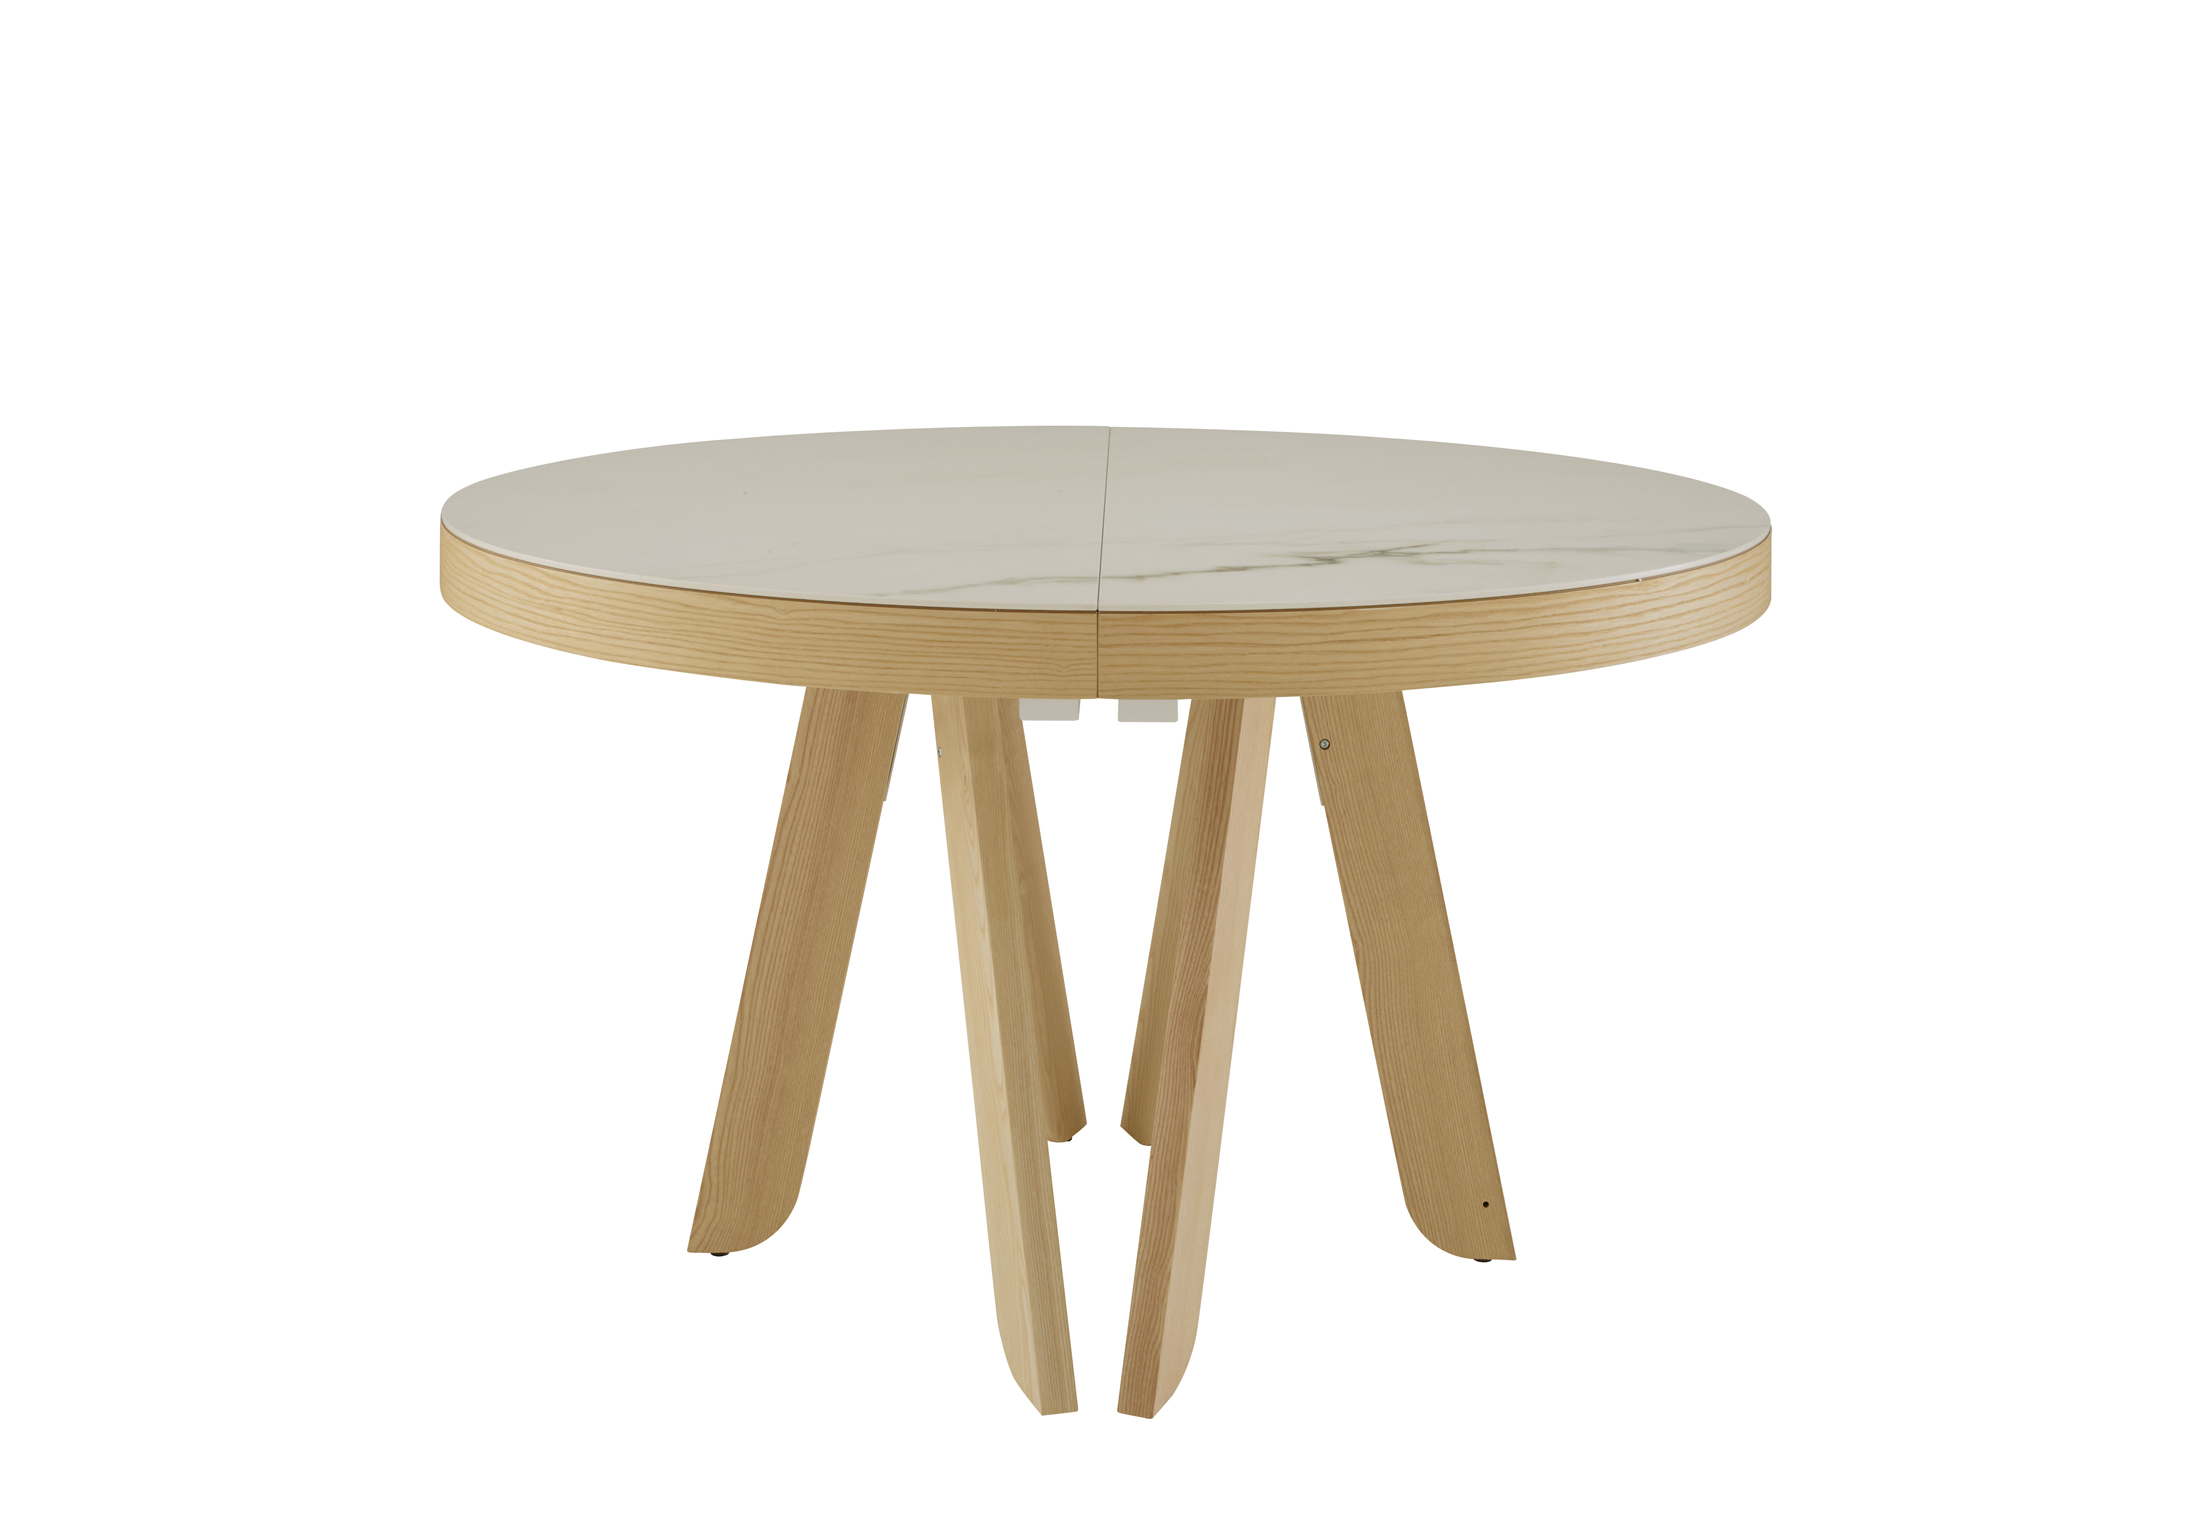 Satori Dining Table by Delo Lindo for Ligne Roset